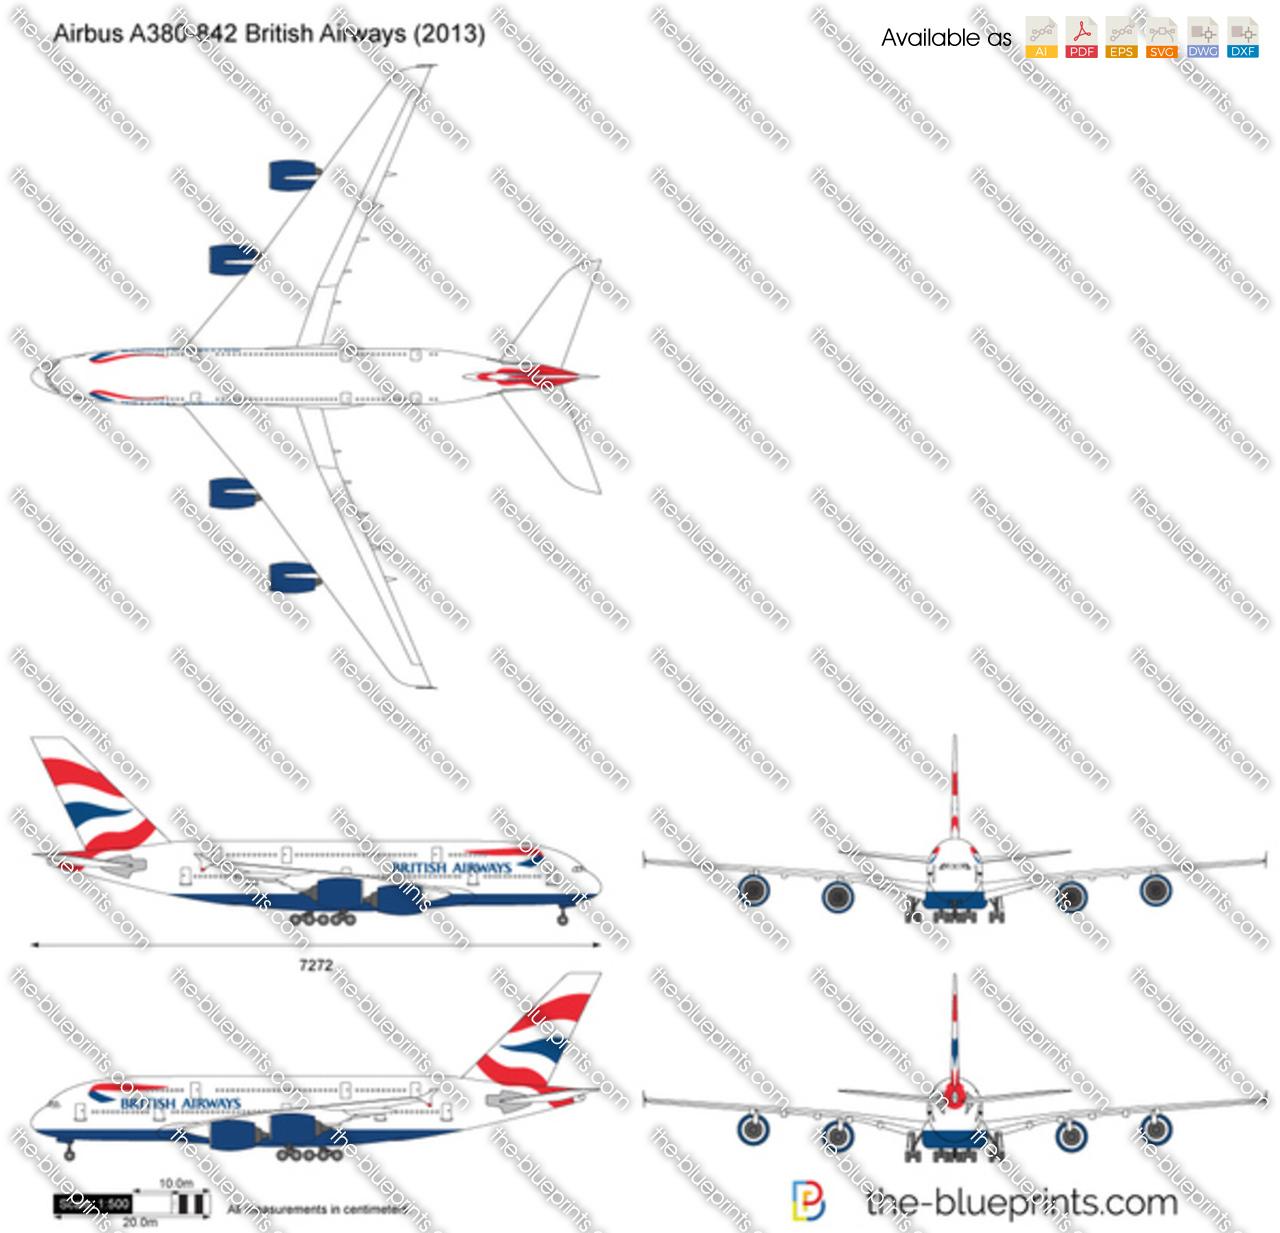 Airbus A380-842 British Airways